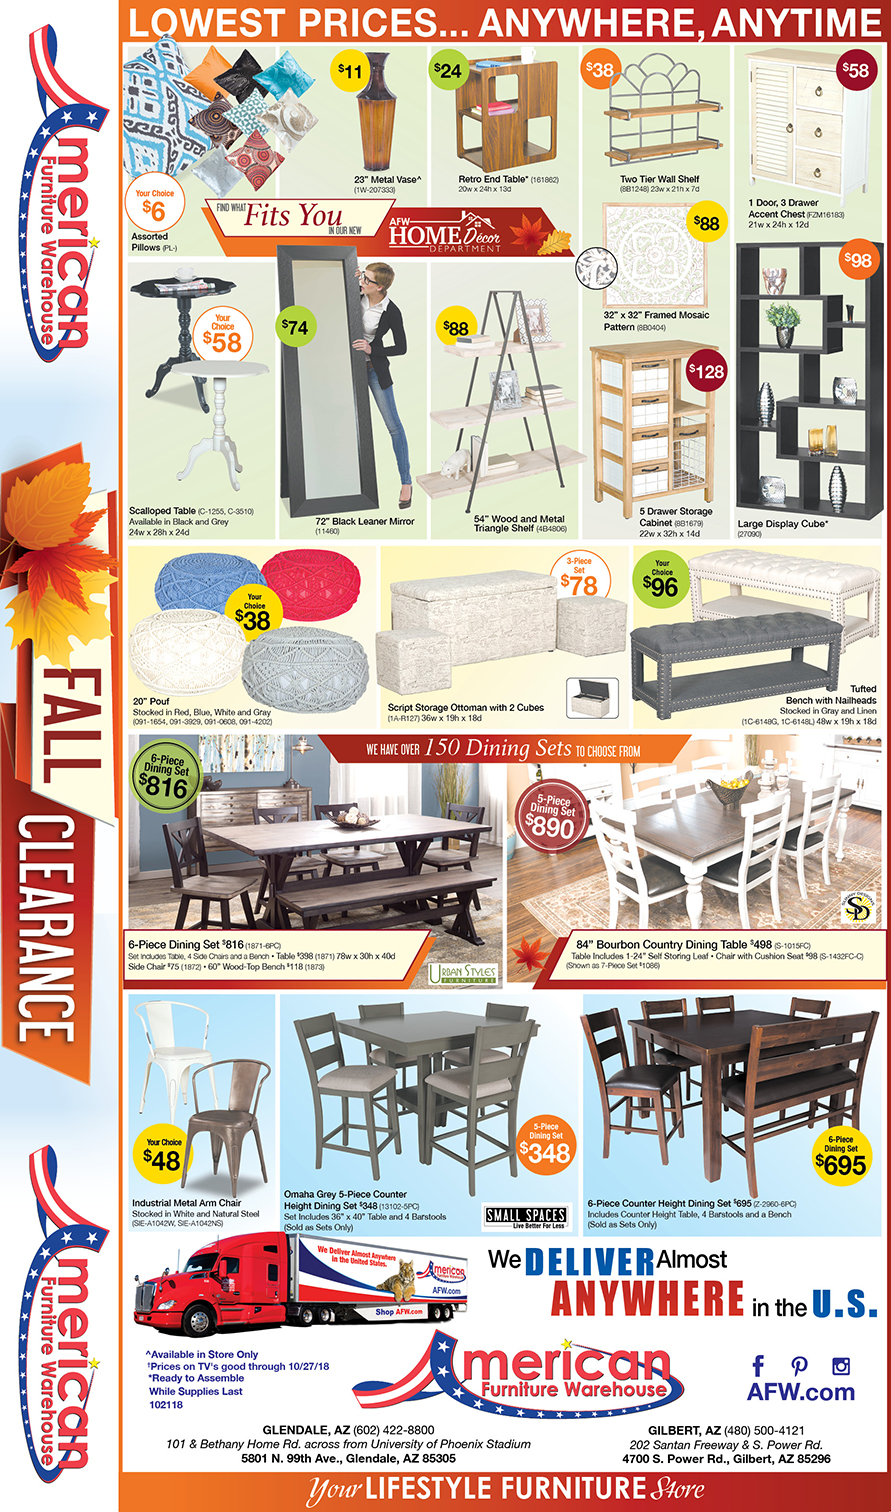 Fall Clearance Event Savings Arizona's Living Room Furniture Newspaper Ad | Lowest Prices on Furniture